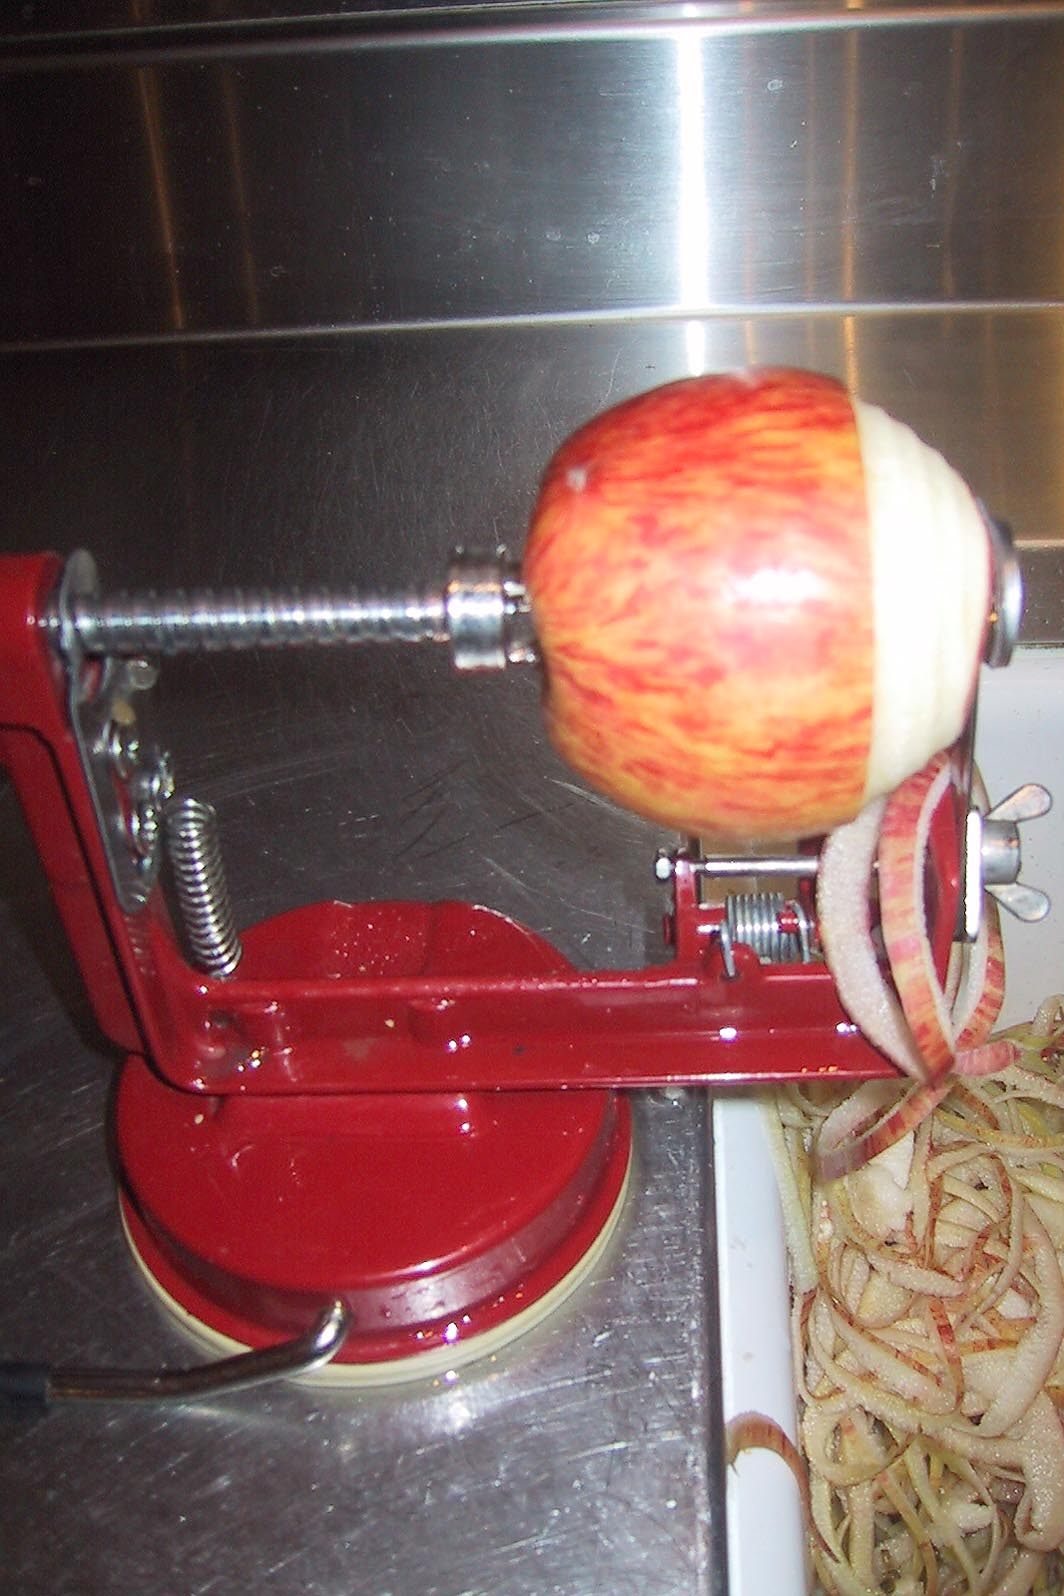 Peeling the apple